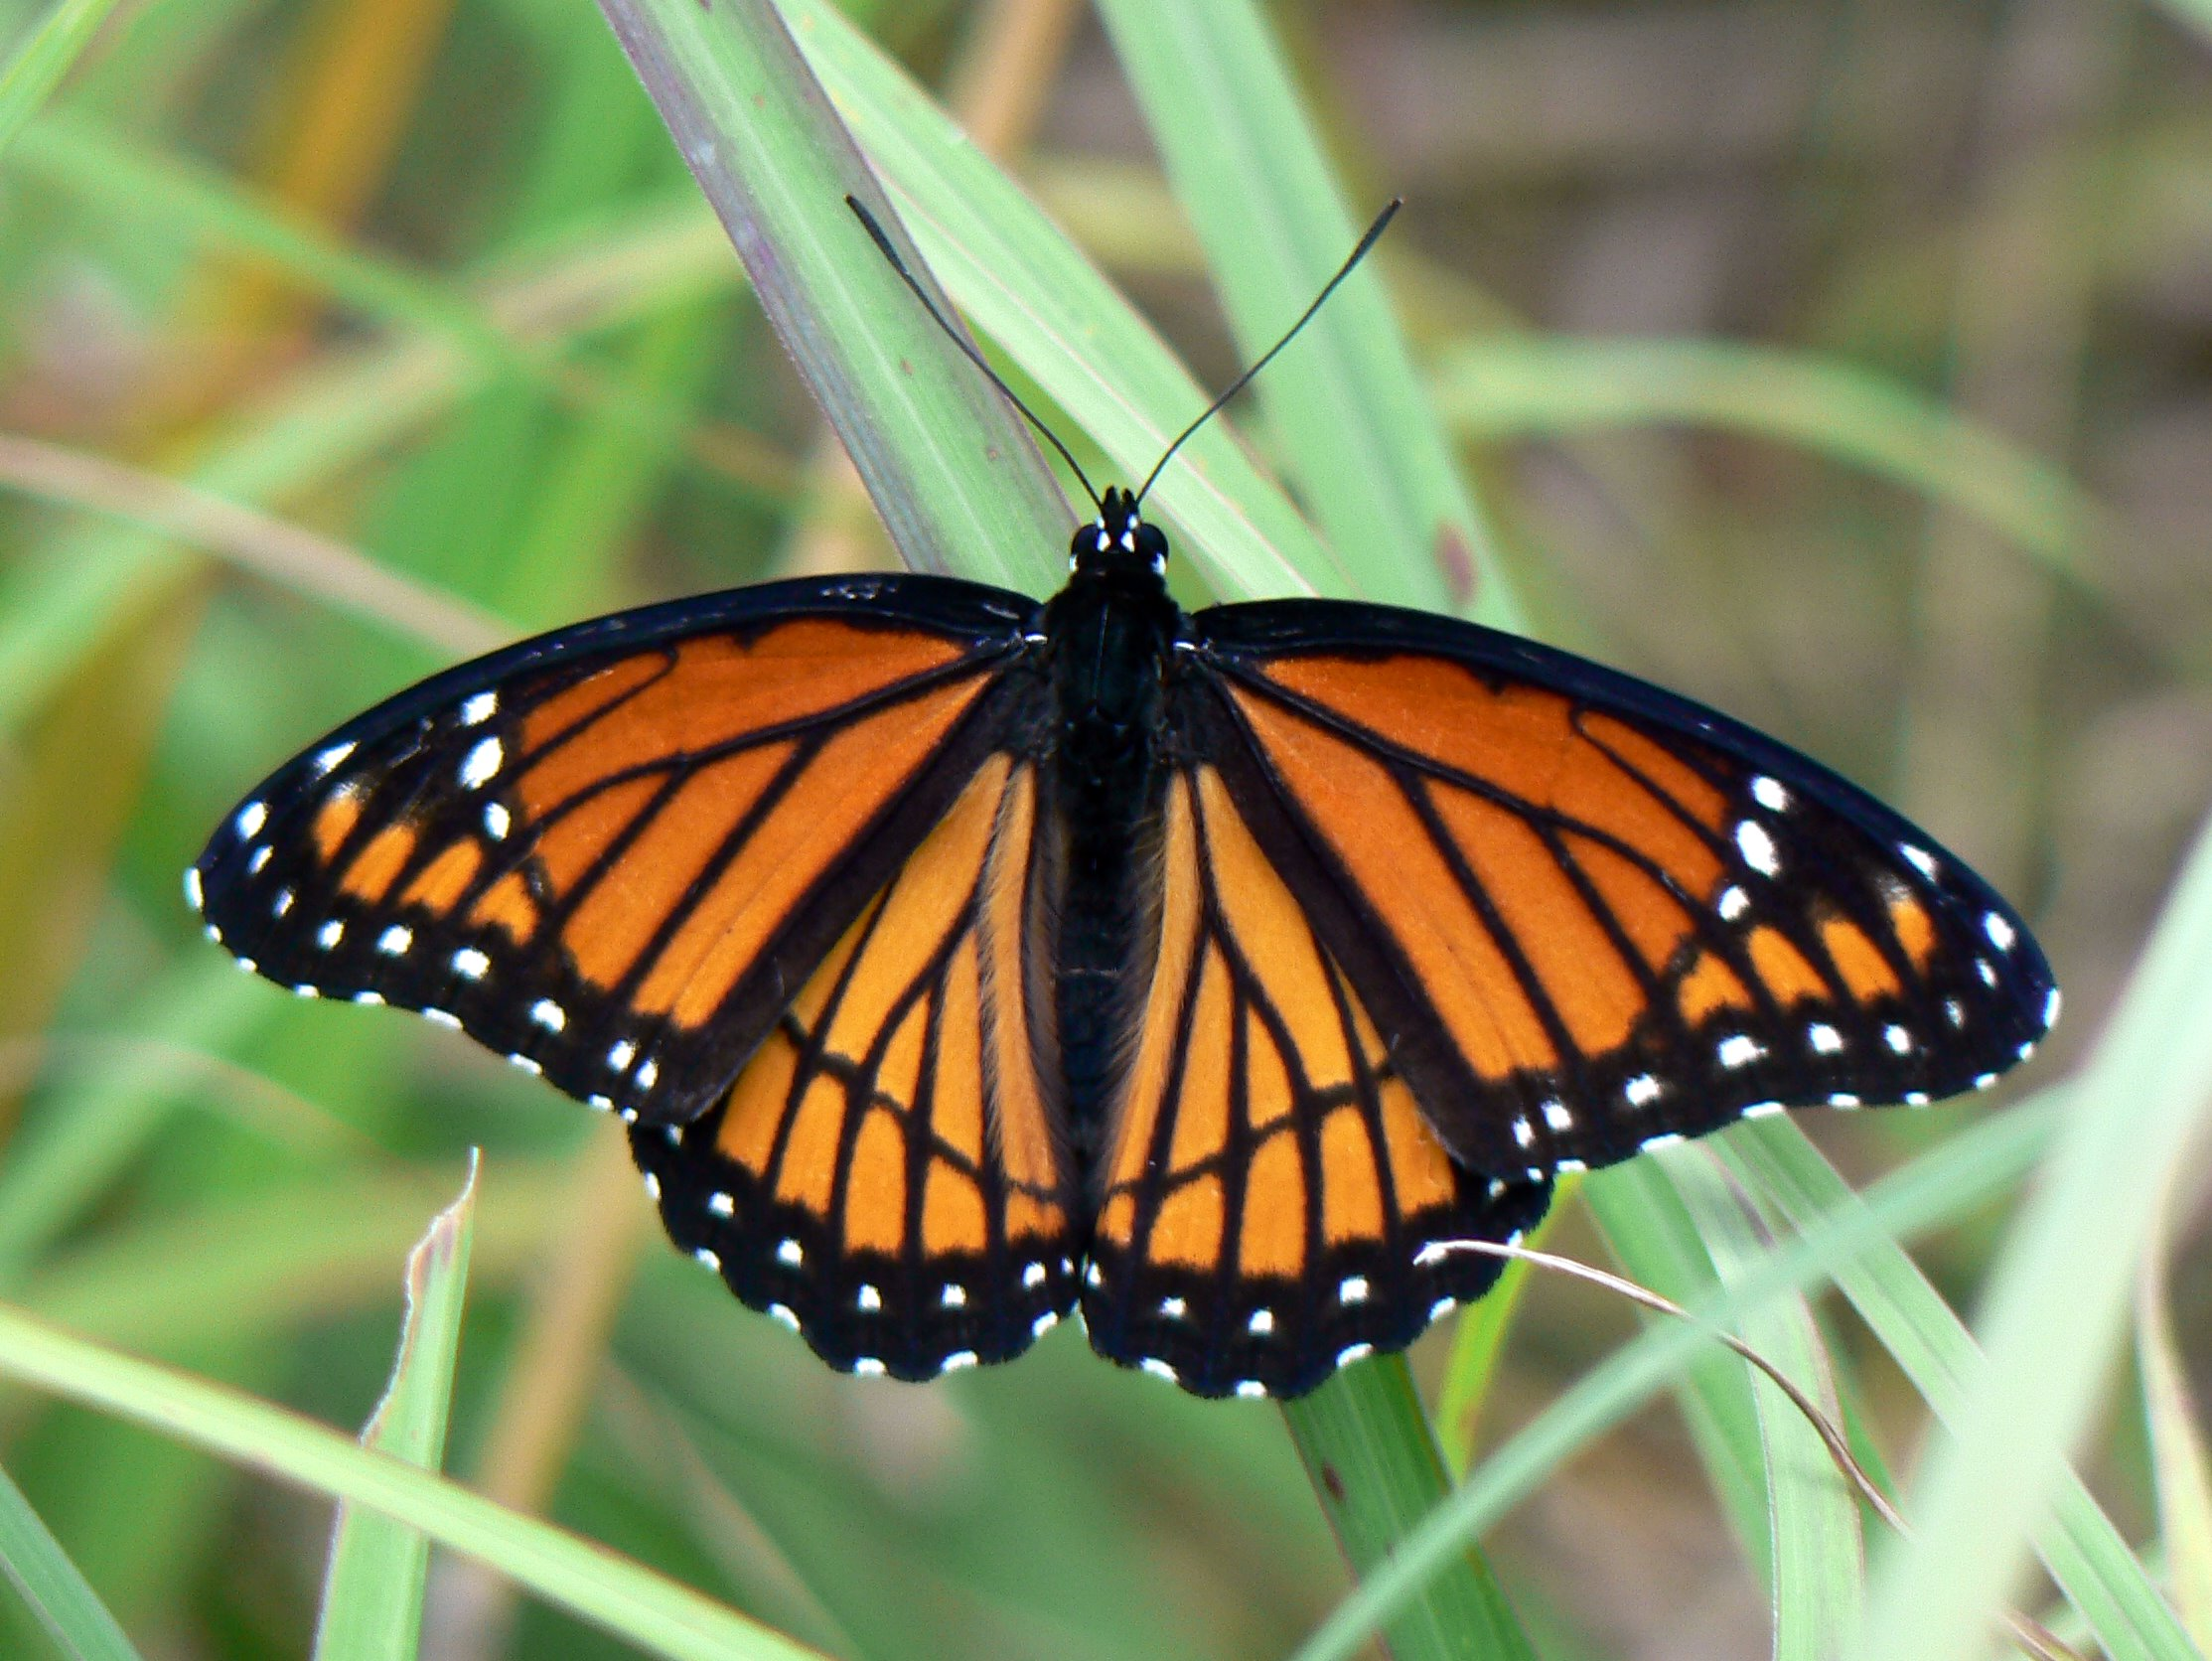 Pictures Of Butterflys Orange And Black Monarch Butterfly 3028903 Hd Wallpaper Backgrounds Download